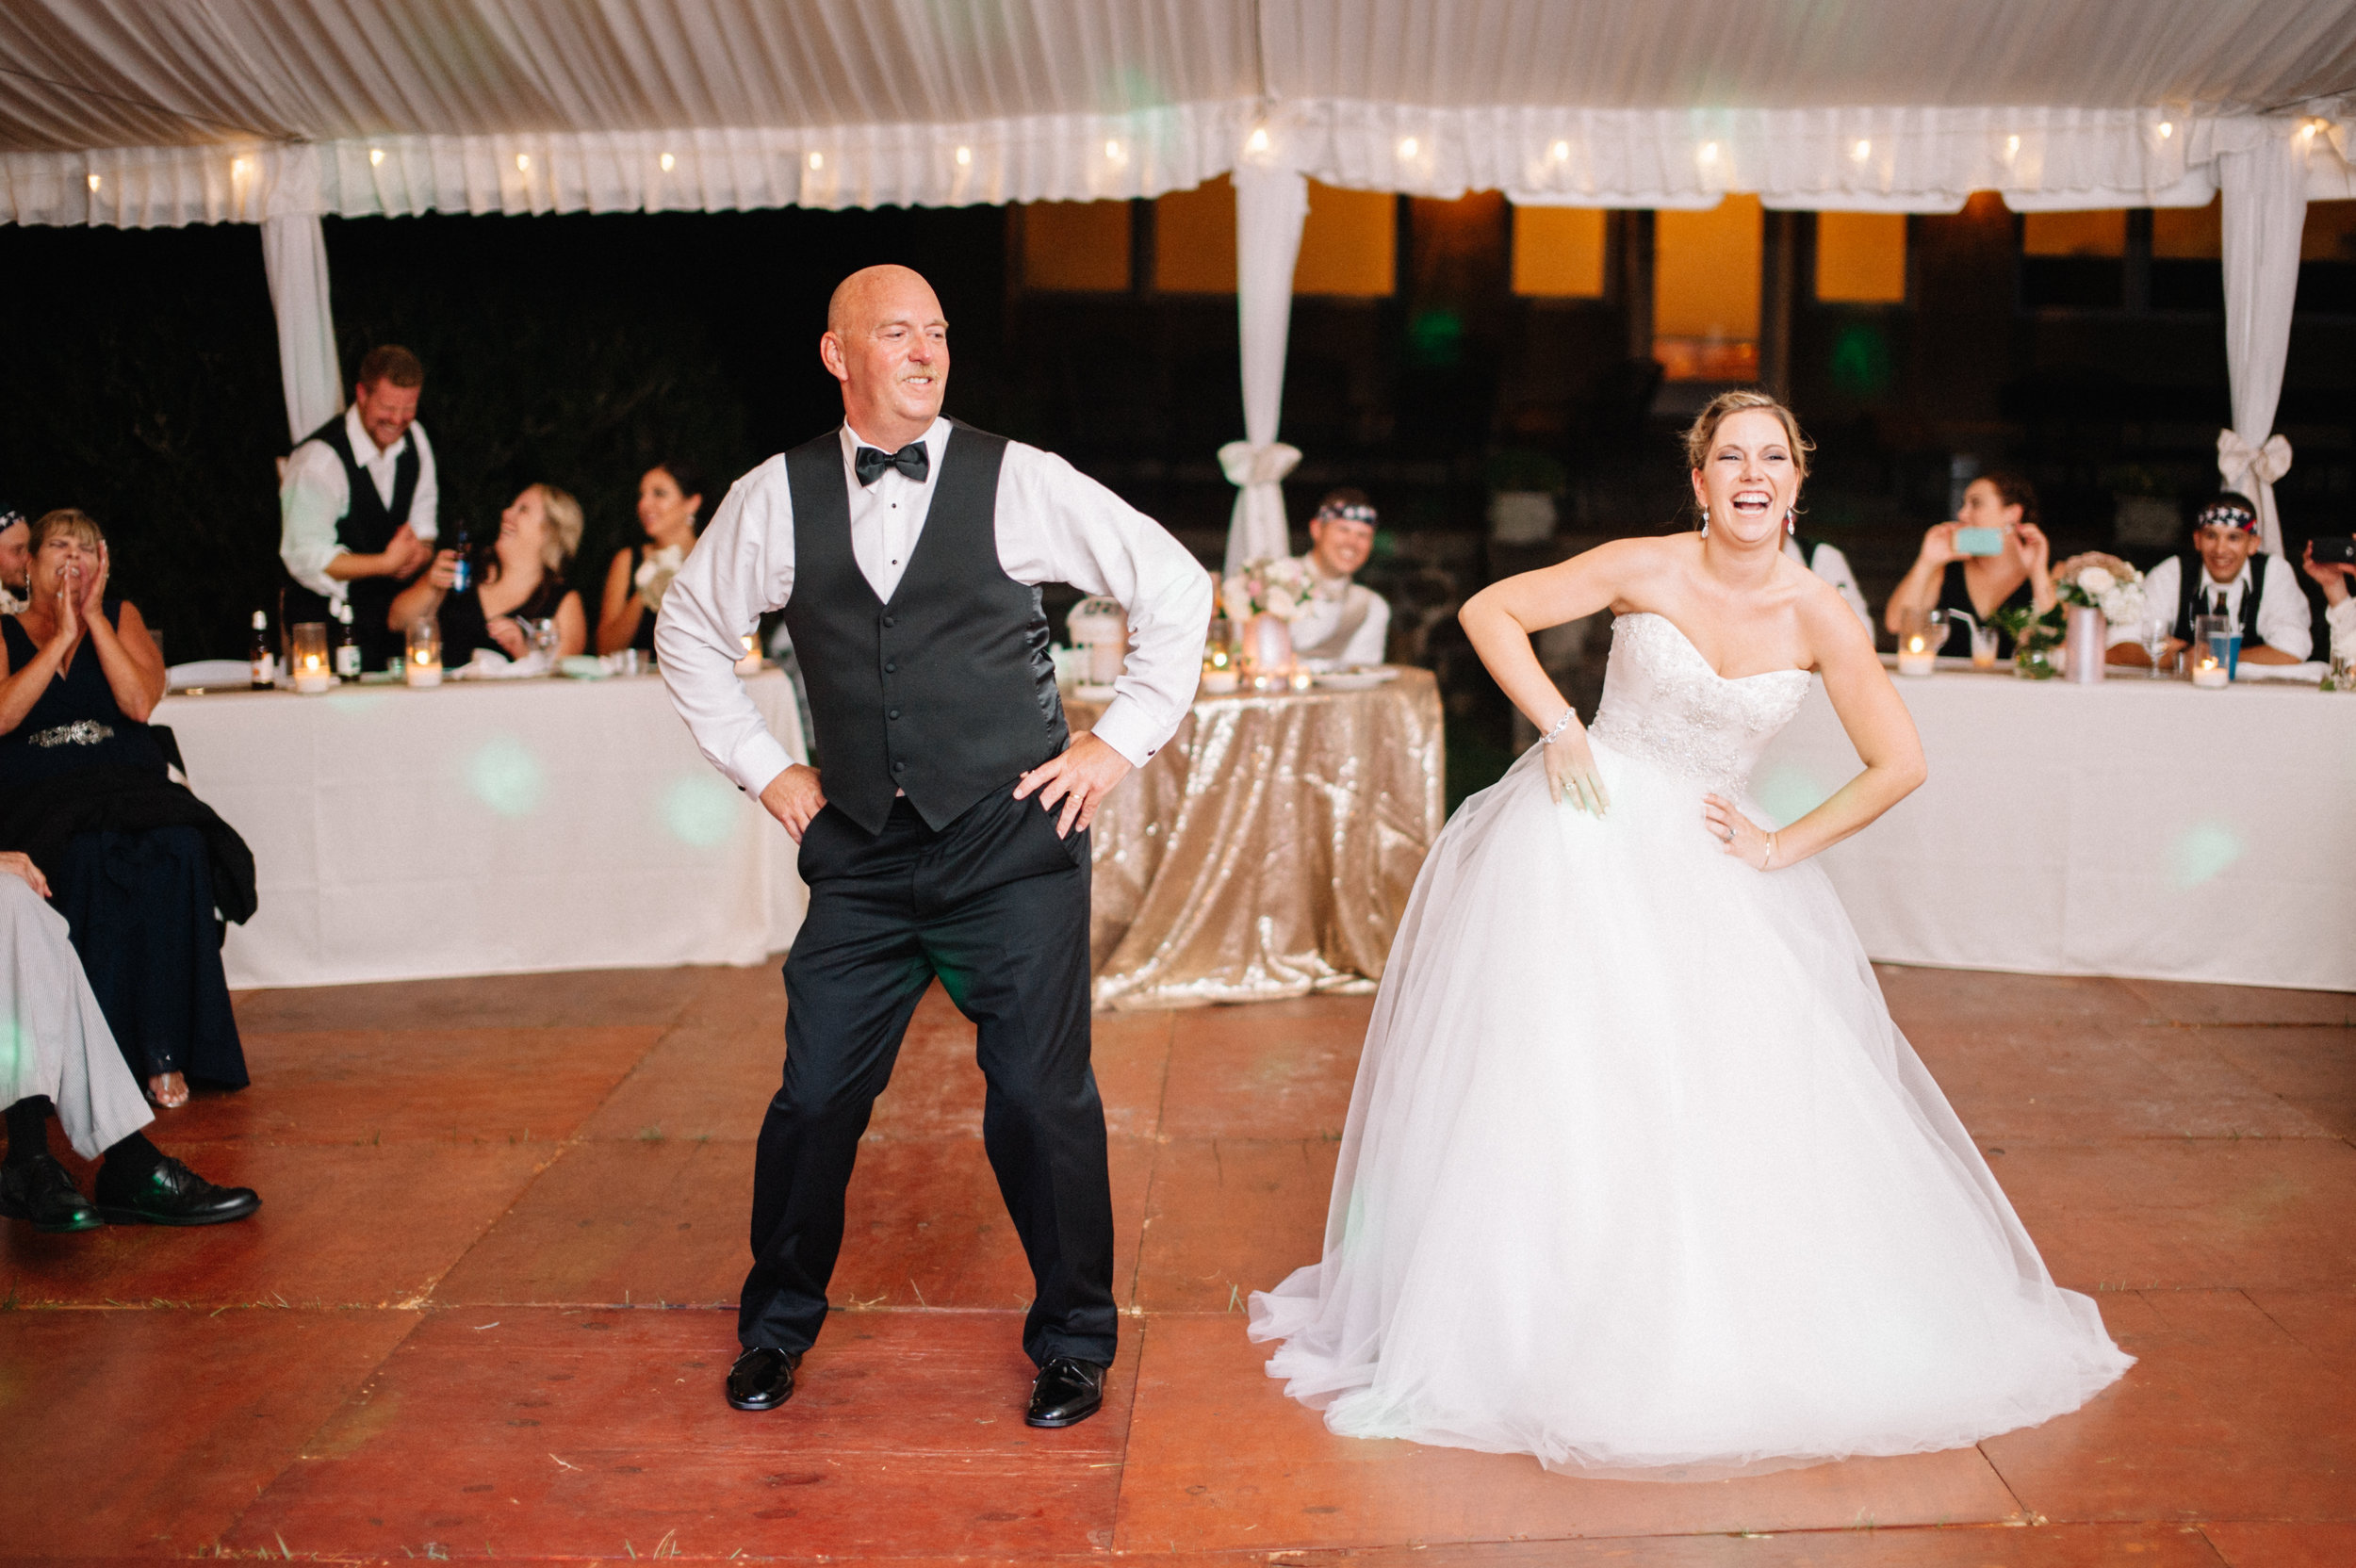 most epic Father-Daughter dance EVER!